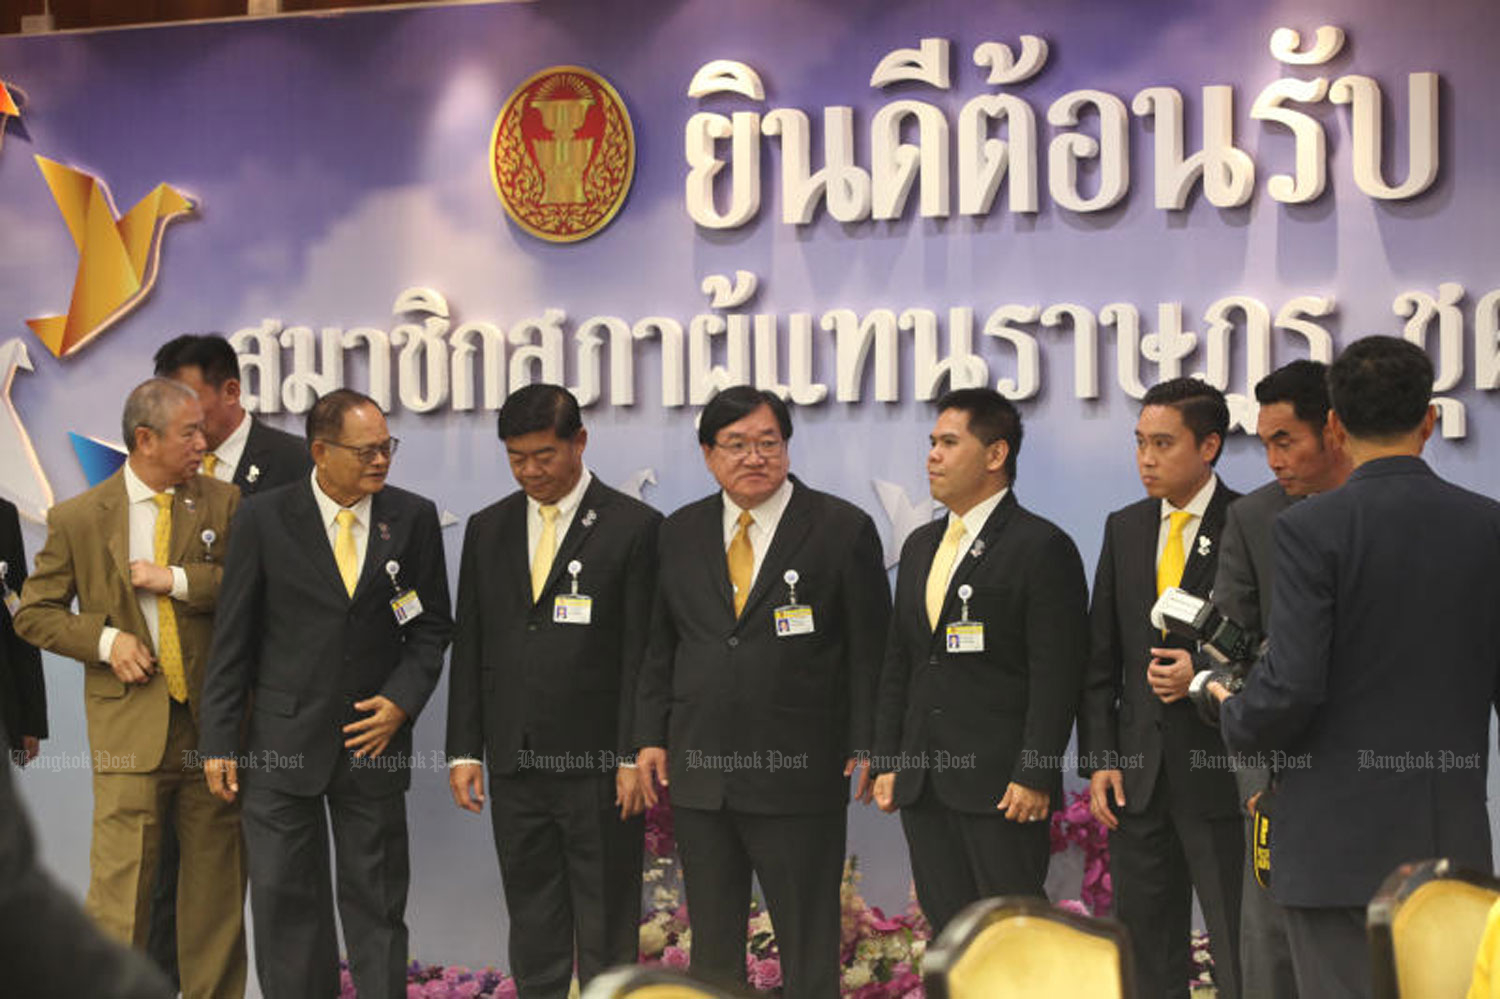 Elected House members from the Chartthaipattana Party report themselves at the Bangkok Council on Tuesday. The parliament will have its first meeting on May 22. (Photo by Pawat Laopaisarntaksin)